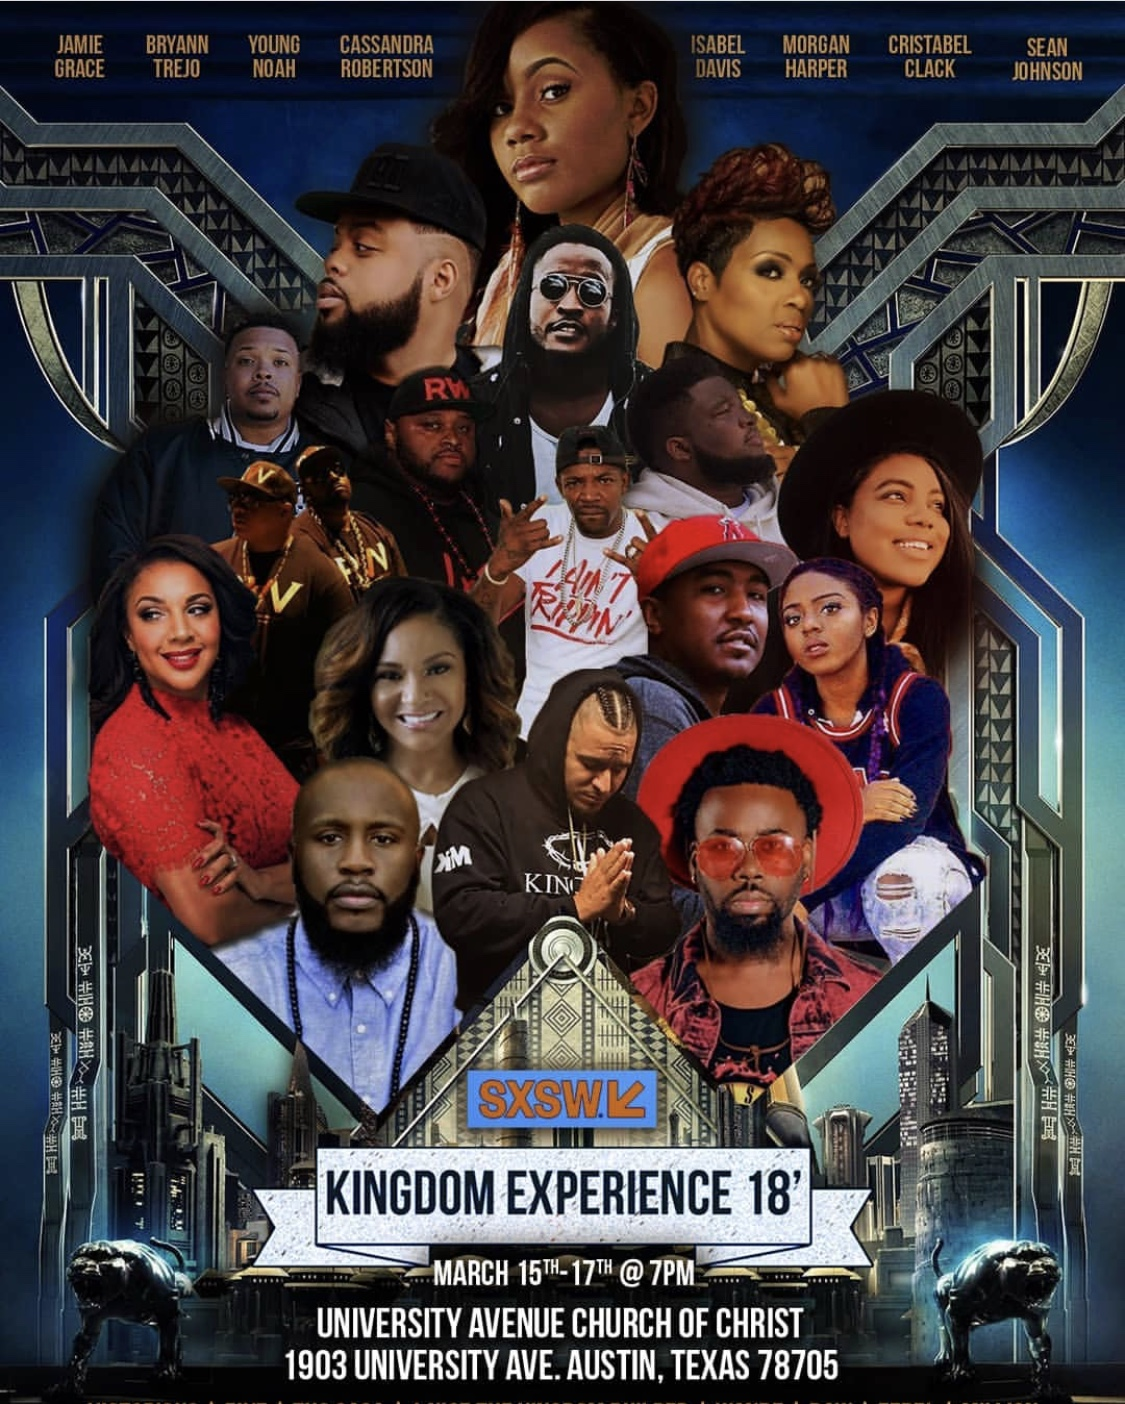 The Kingdom Experience Flyer